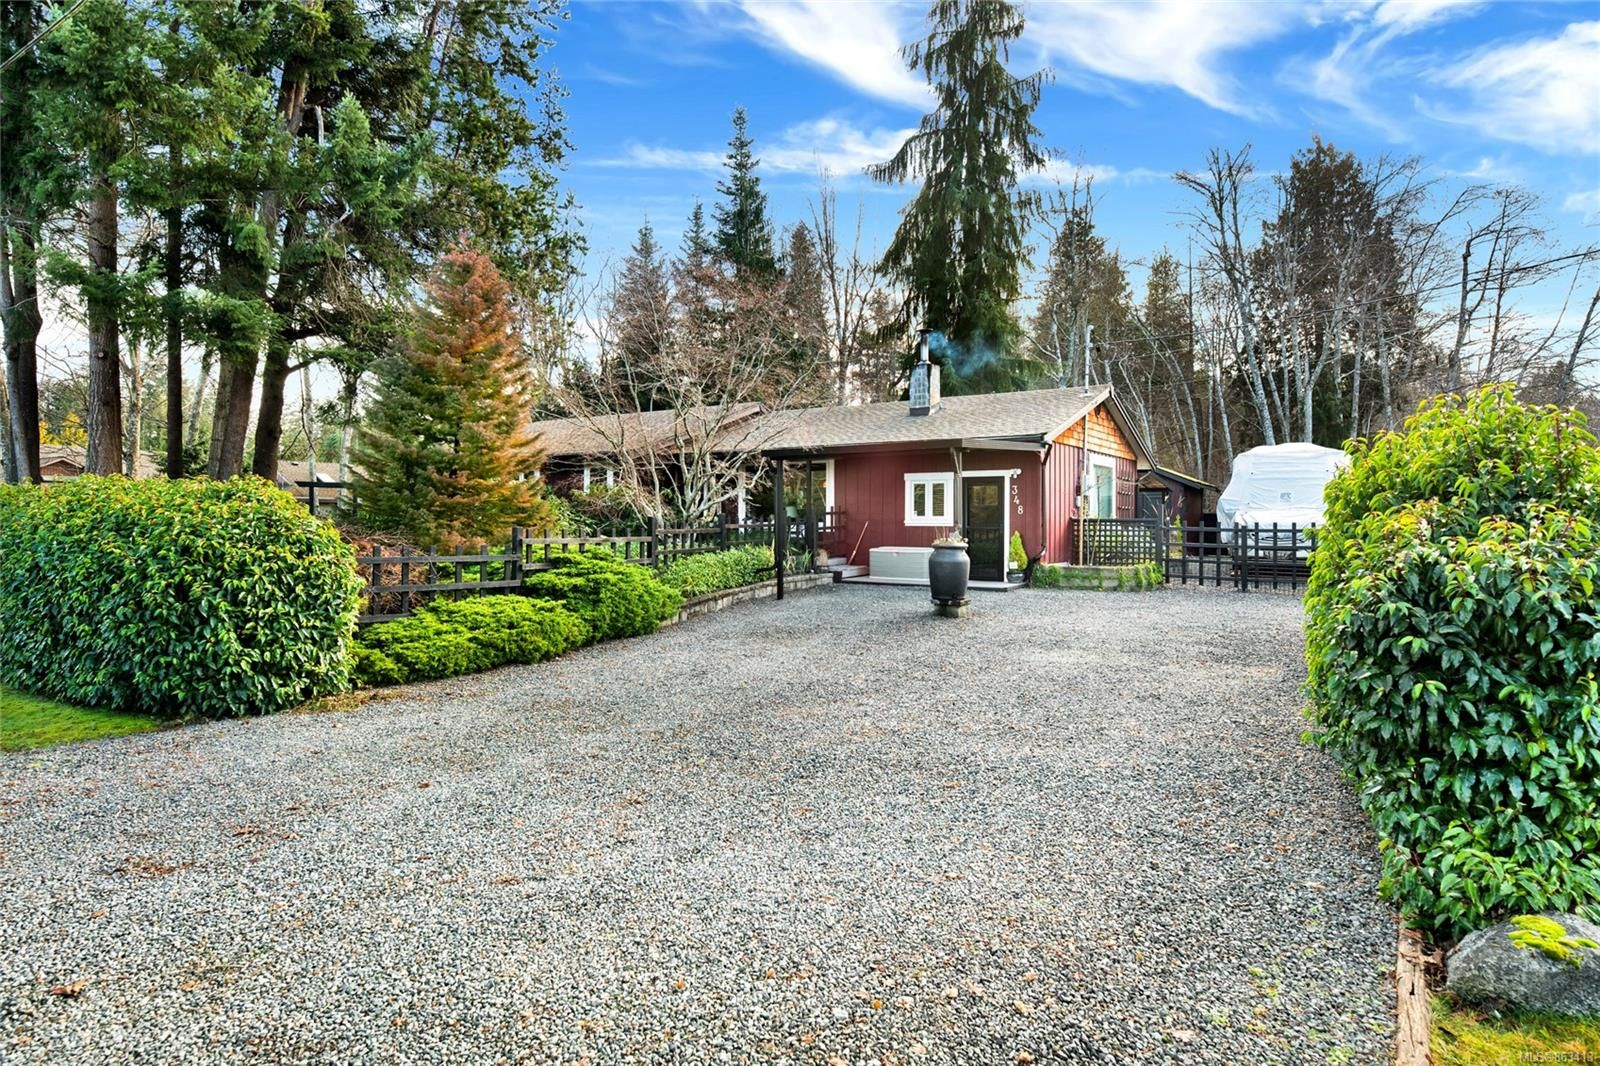 Main Photo: 348 Mill Rd in : PQ Qualicum Beach House for sale (Parksville/Qualicum)  : MLS®# 863413